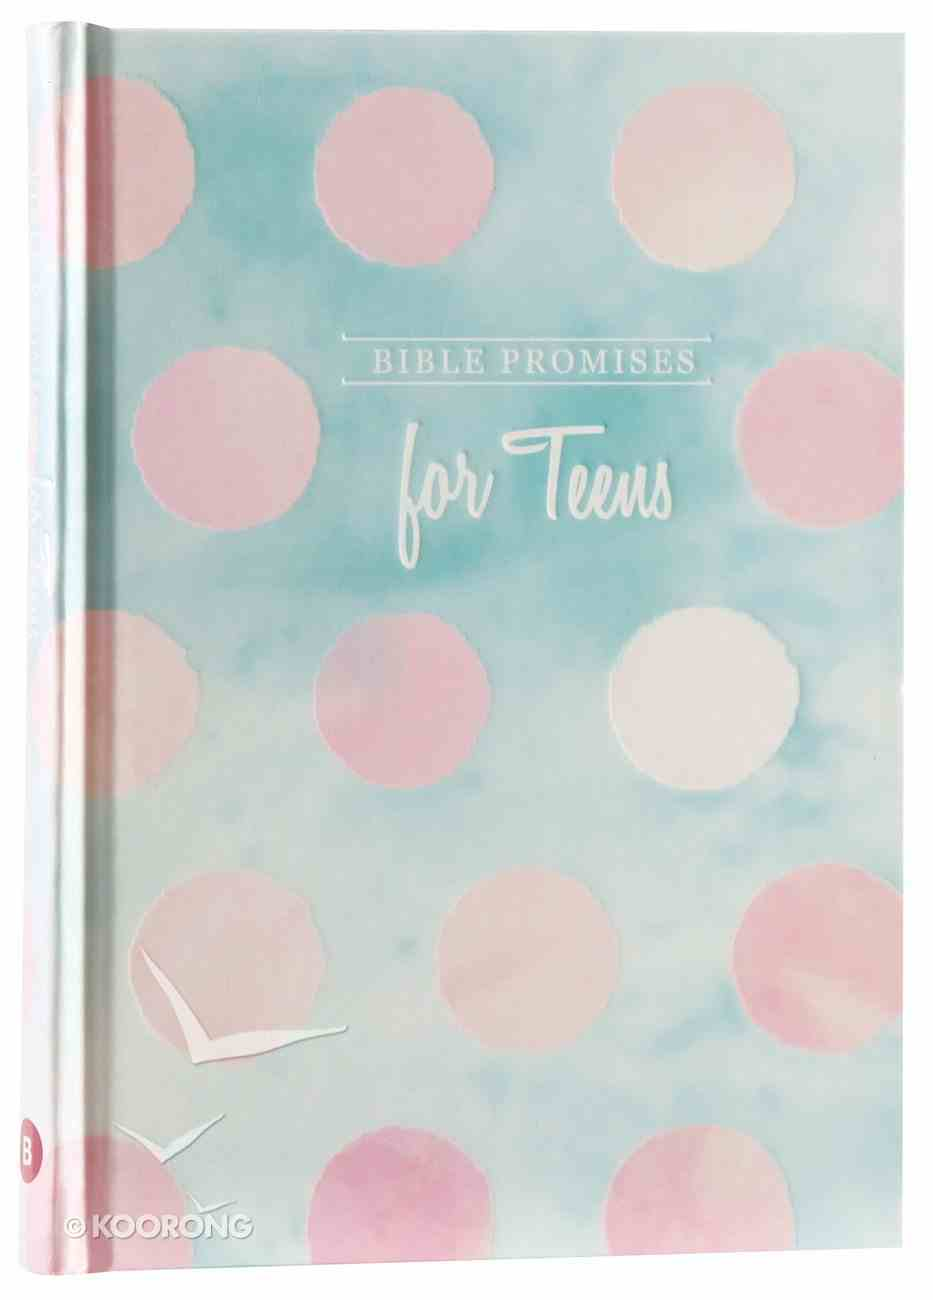 Bible Promises For Teens (Bible Promises Series) Hardback